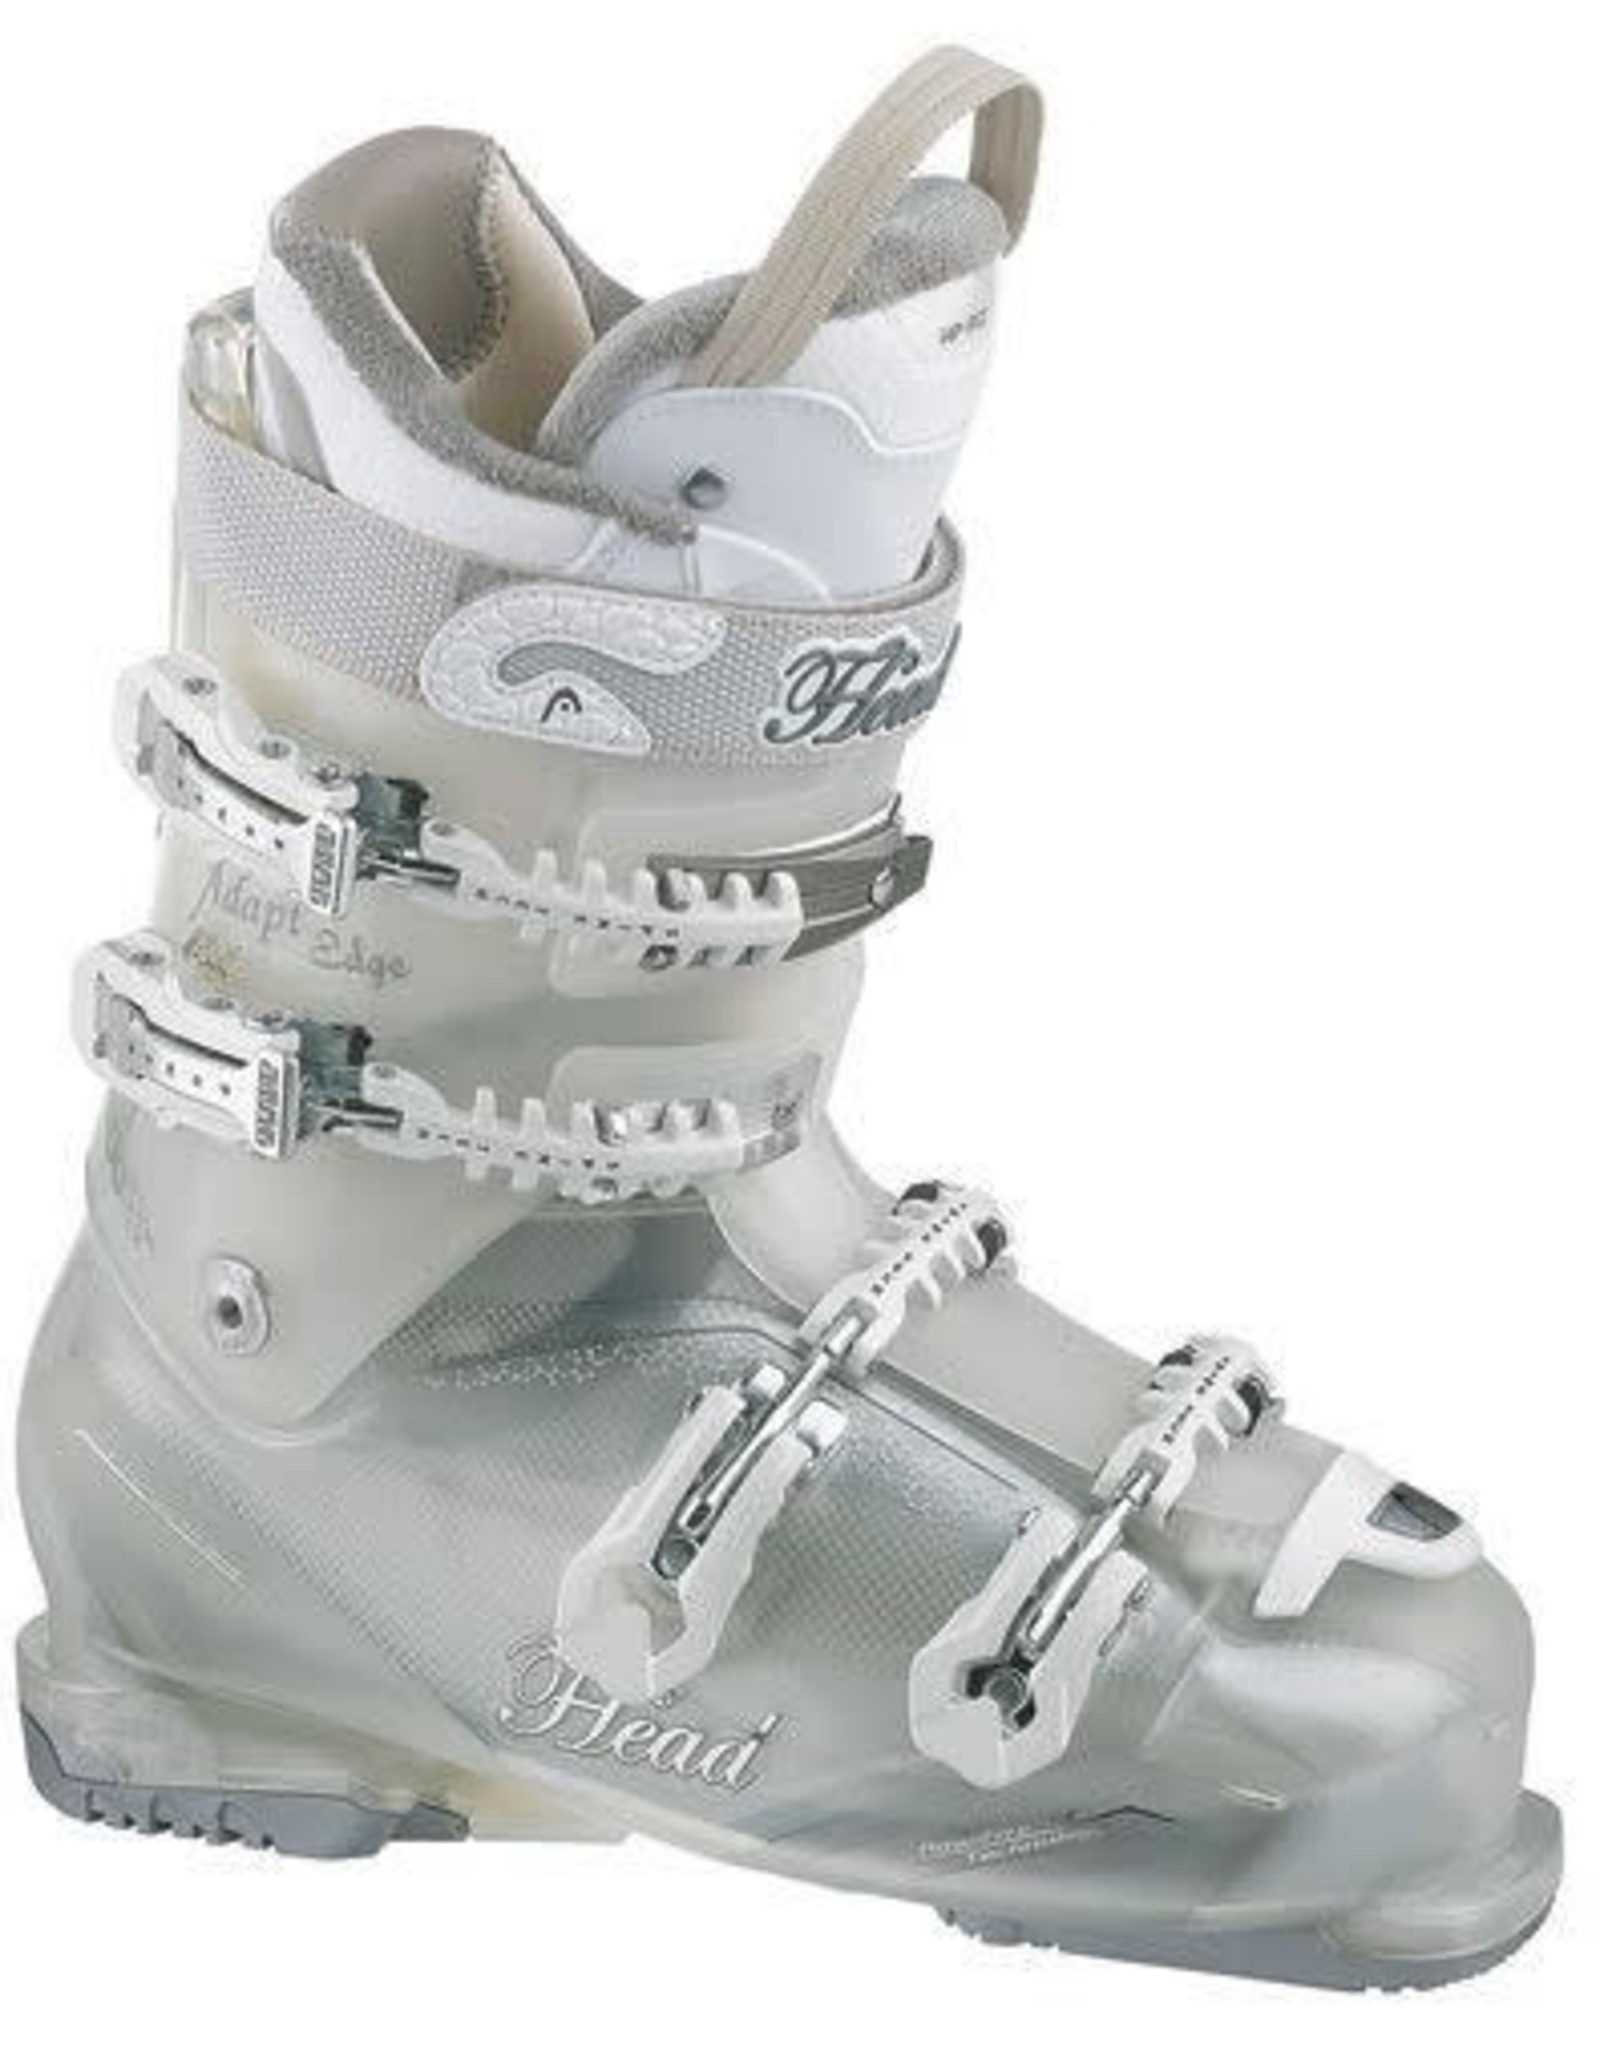 HEAD HEAD Ski Boots ADAPT EDGE 100 (13/14)